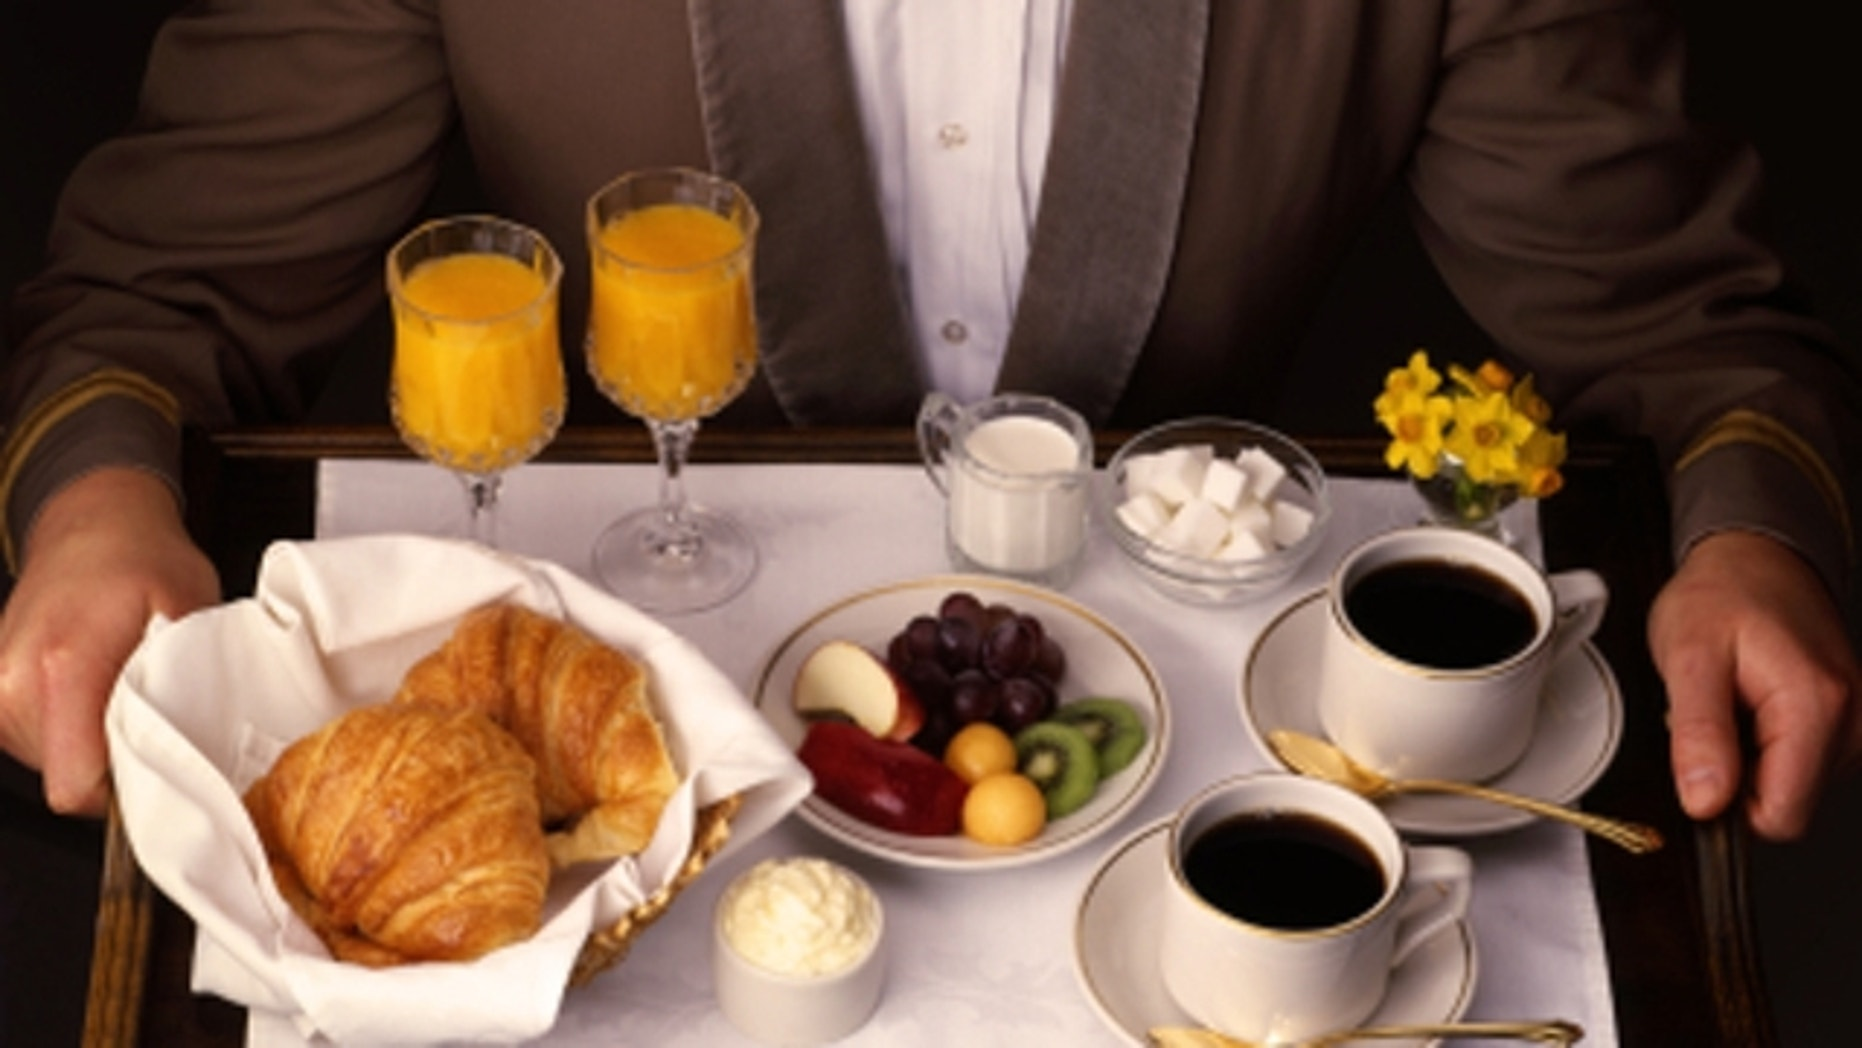 Room Service: Major Hotels Chains Are Reducing Or Dropping Room Service